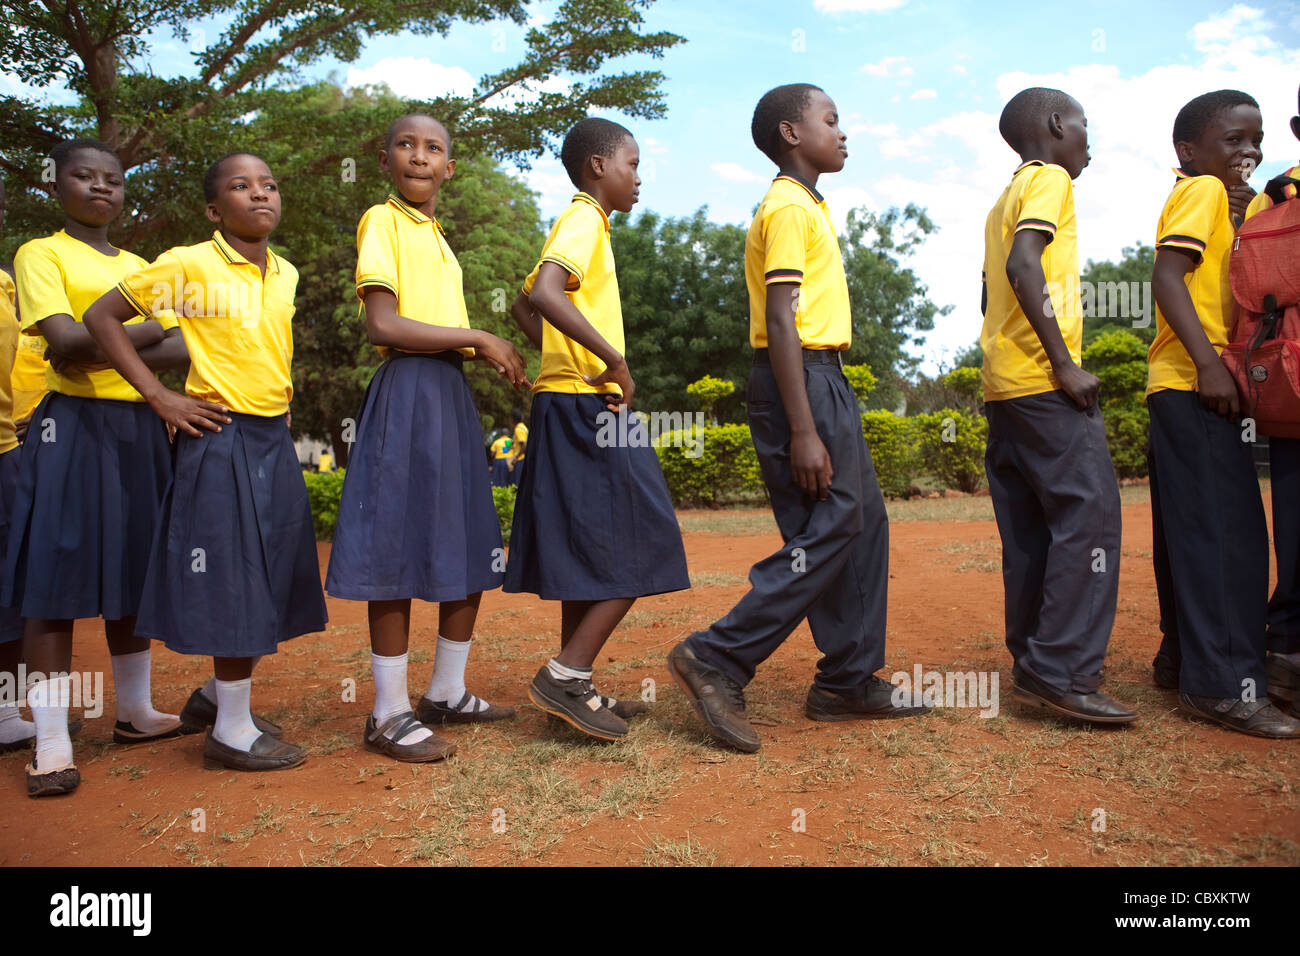 Students queue to wash their hands at a school in Morogoro, Tanzania, East Africa. - Stock Image